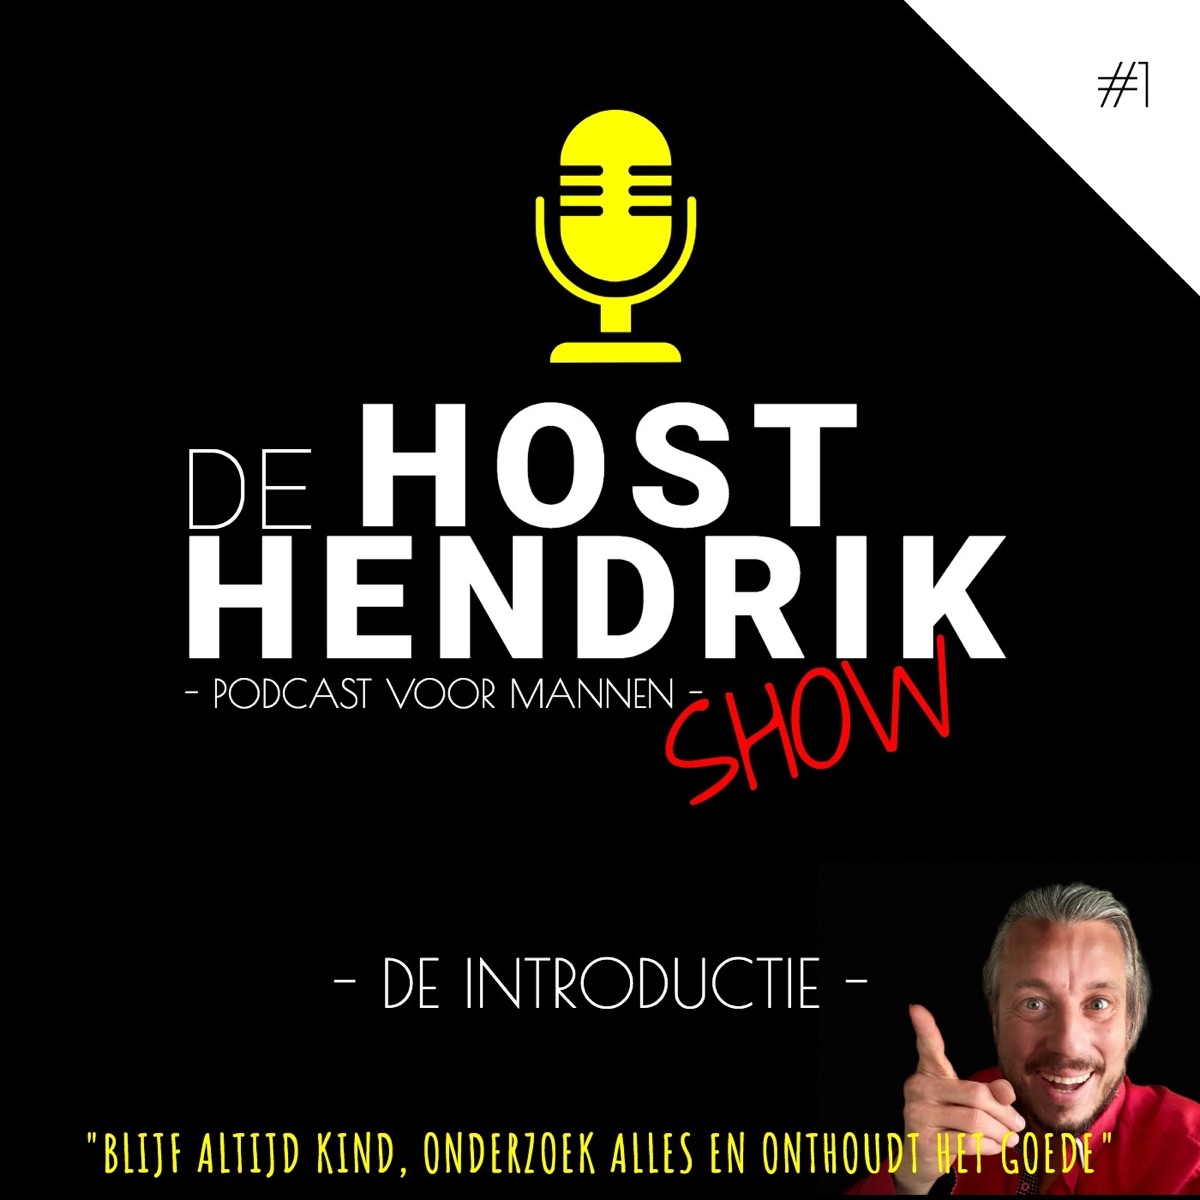 DE HOST HENDRIK SHOW PODCAST